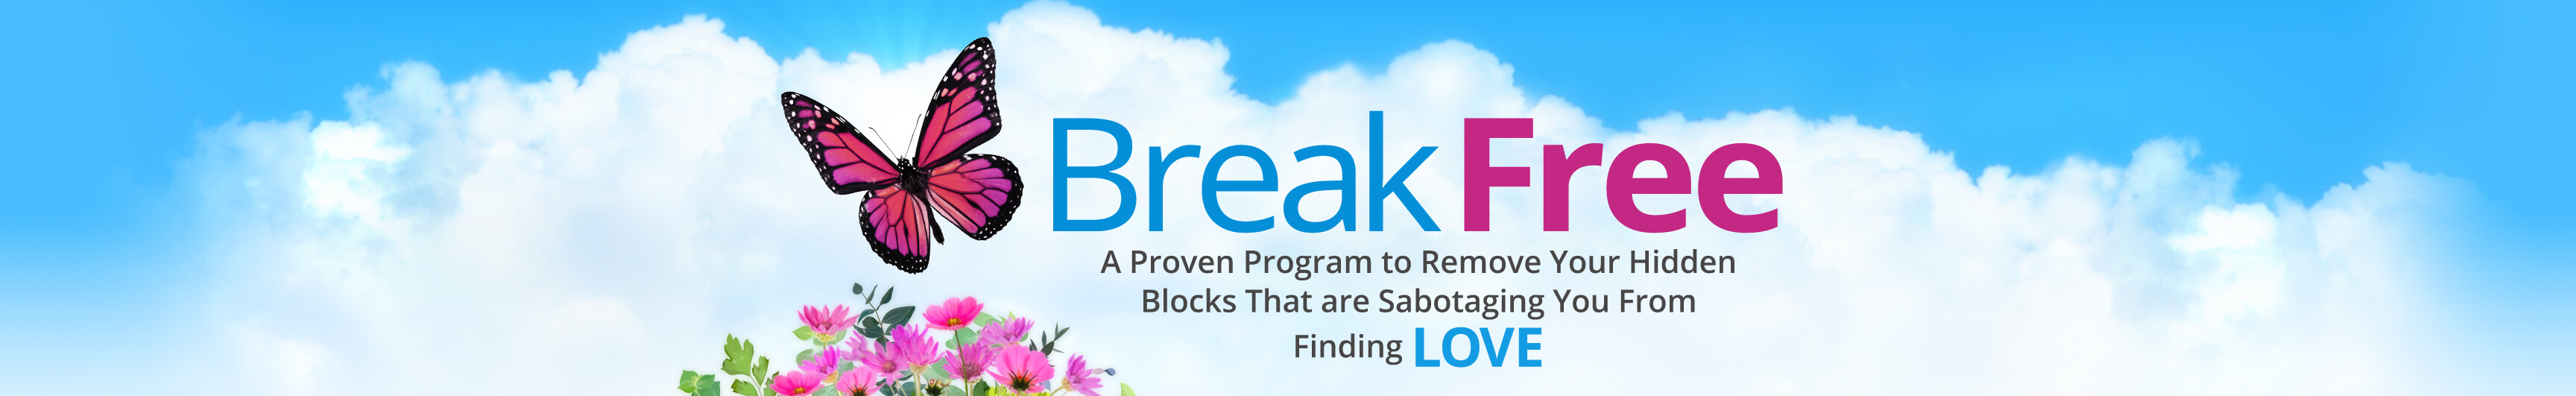 Break Free - Mat Boggs' proven program to remove subconscious blocks to LOVE